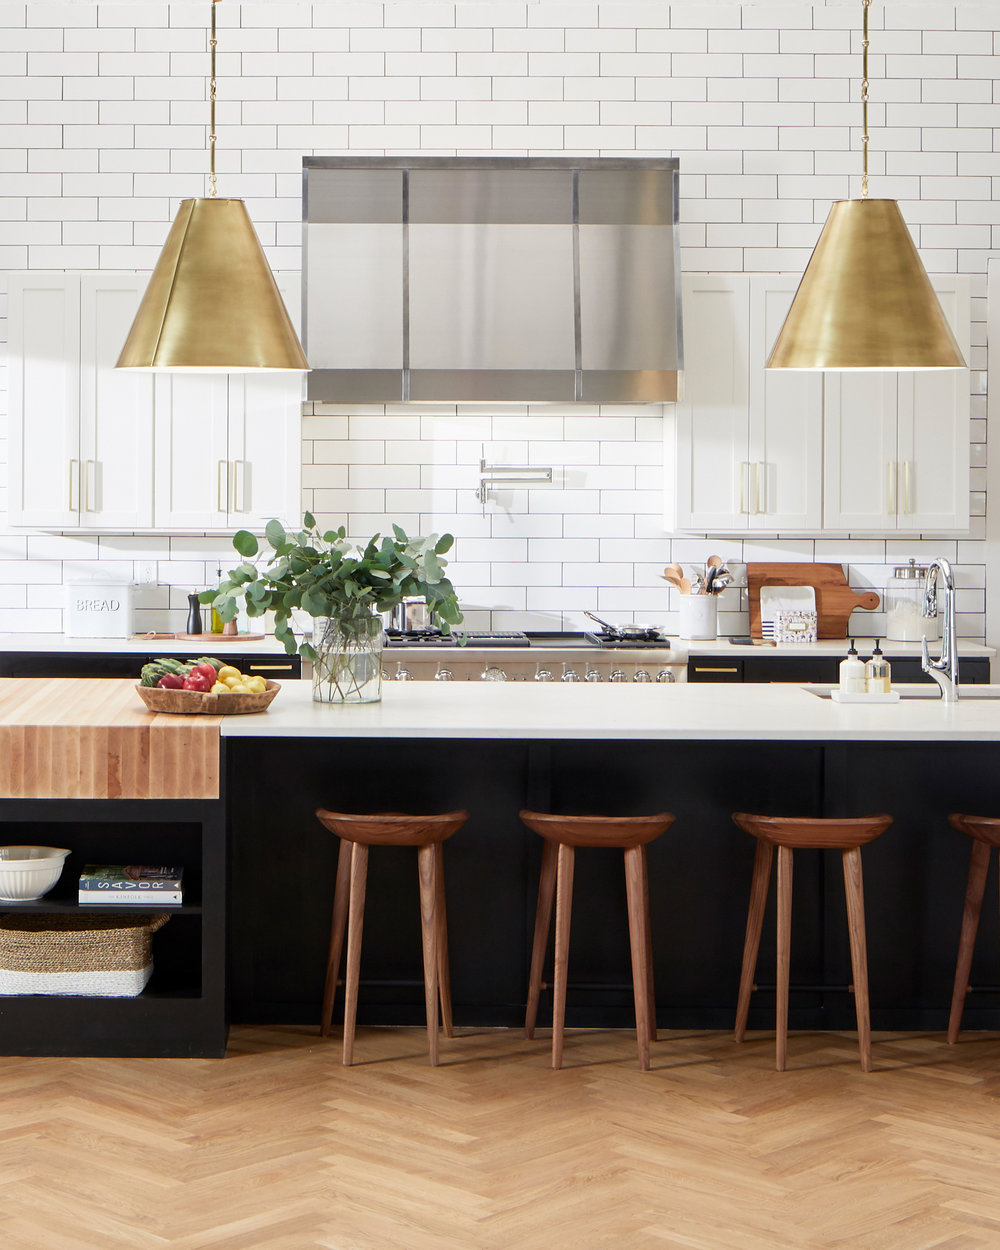 The Trendiest Kitchen Colors For 2019 Are Definitely Not: Five Kitchen Trends Of 2019